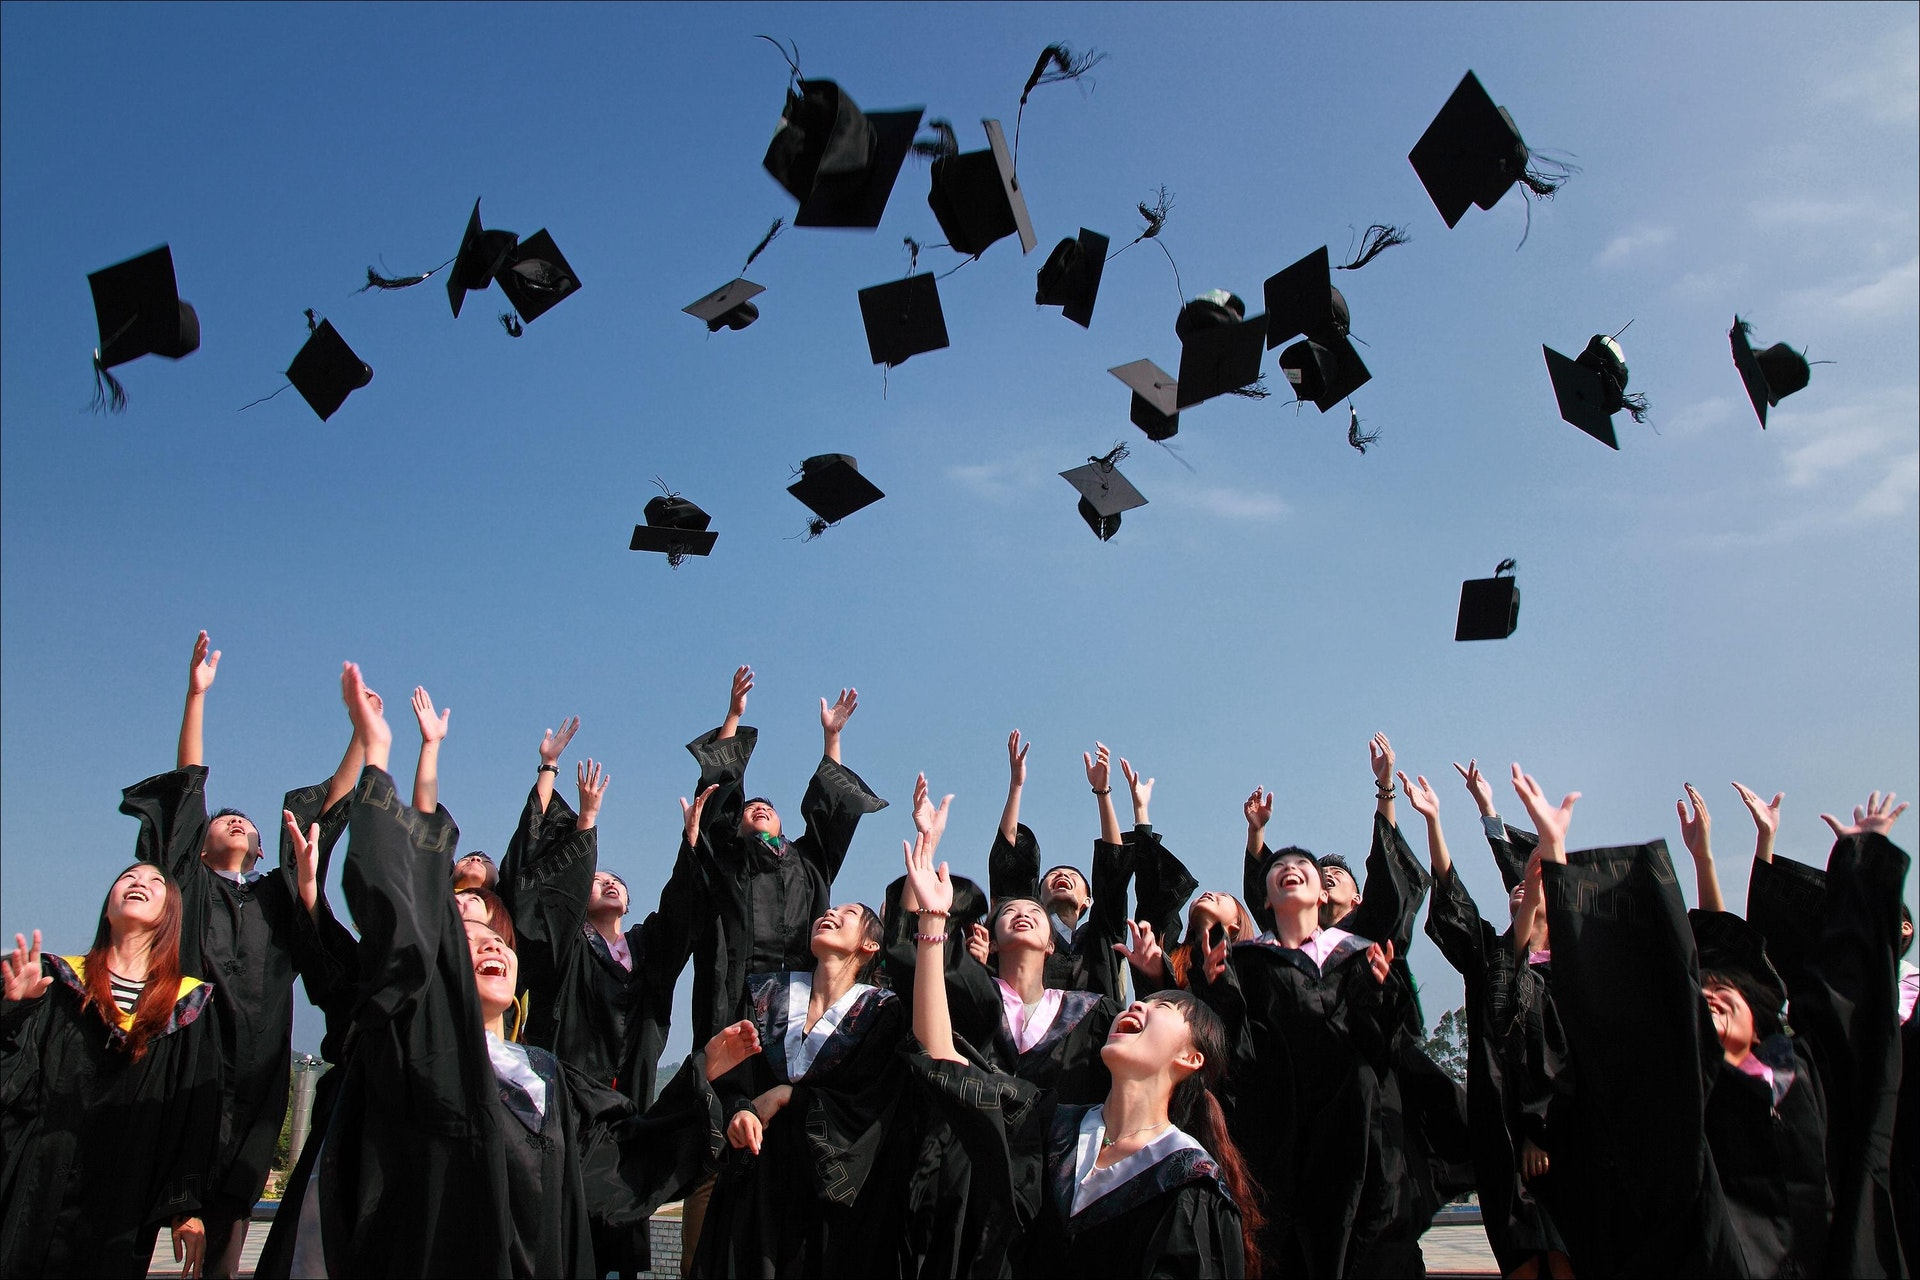 How to Choose the Best University for Your Career